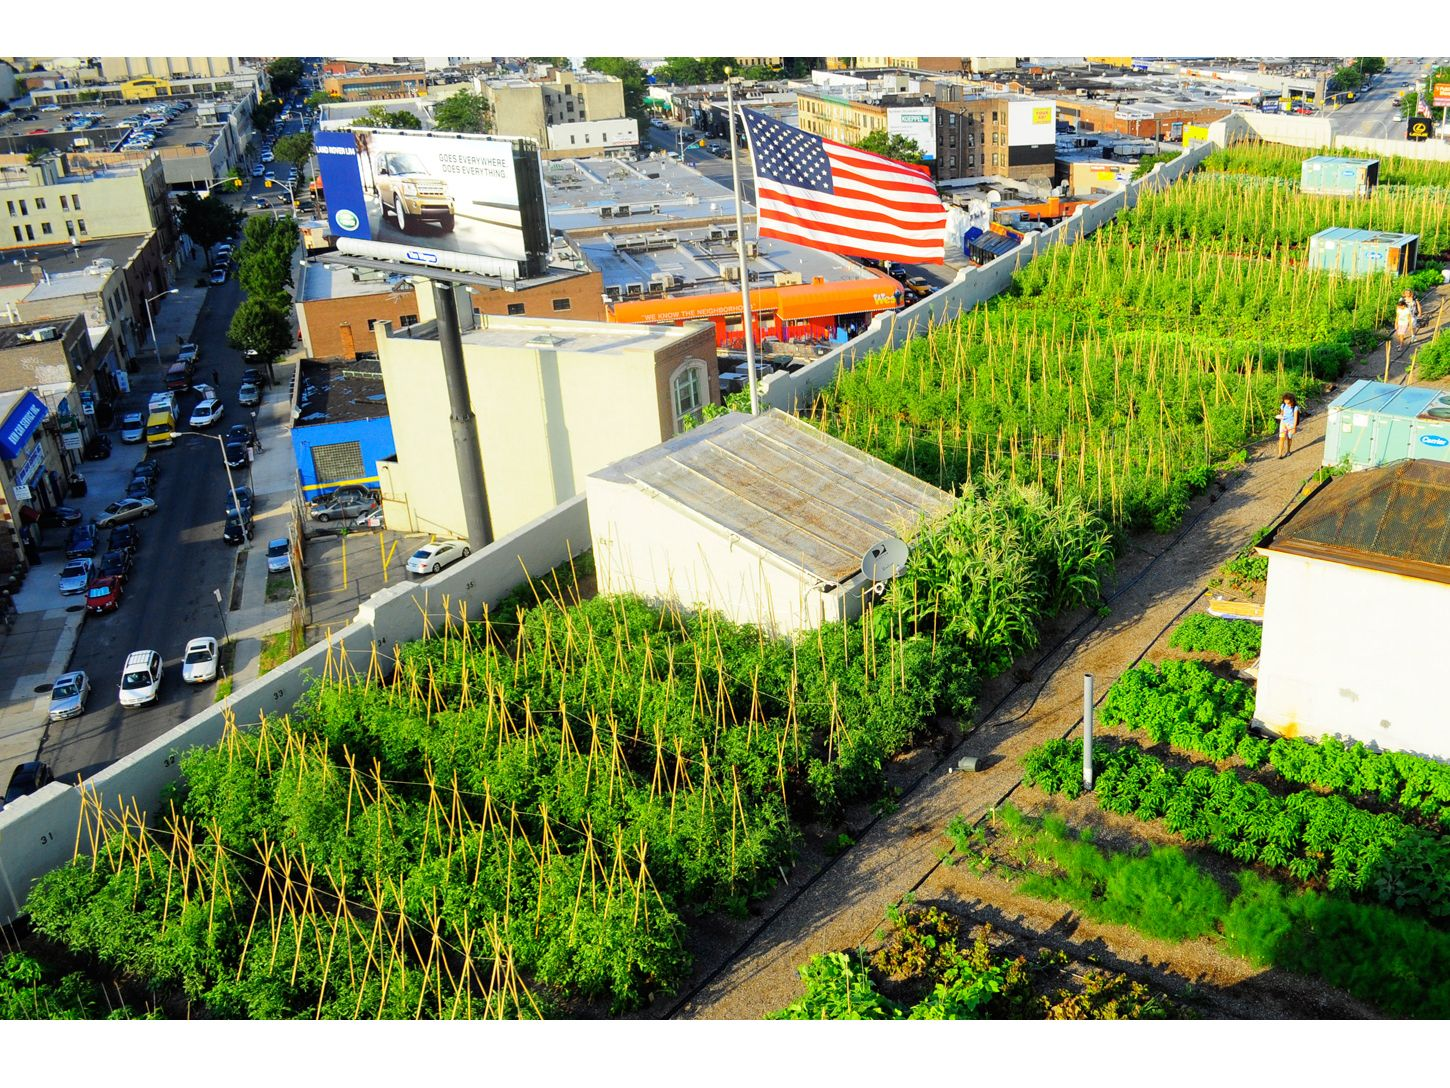 Brooklyn Grange Rooftop Farm Flagship Farm 1 At